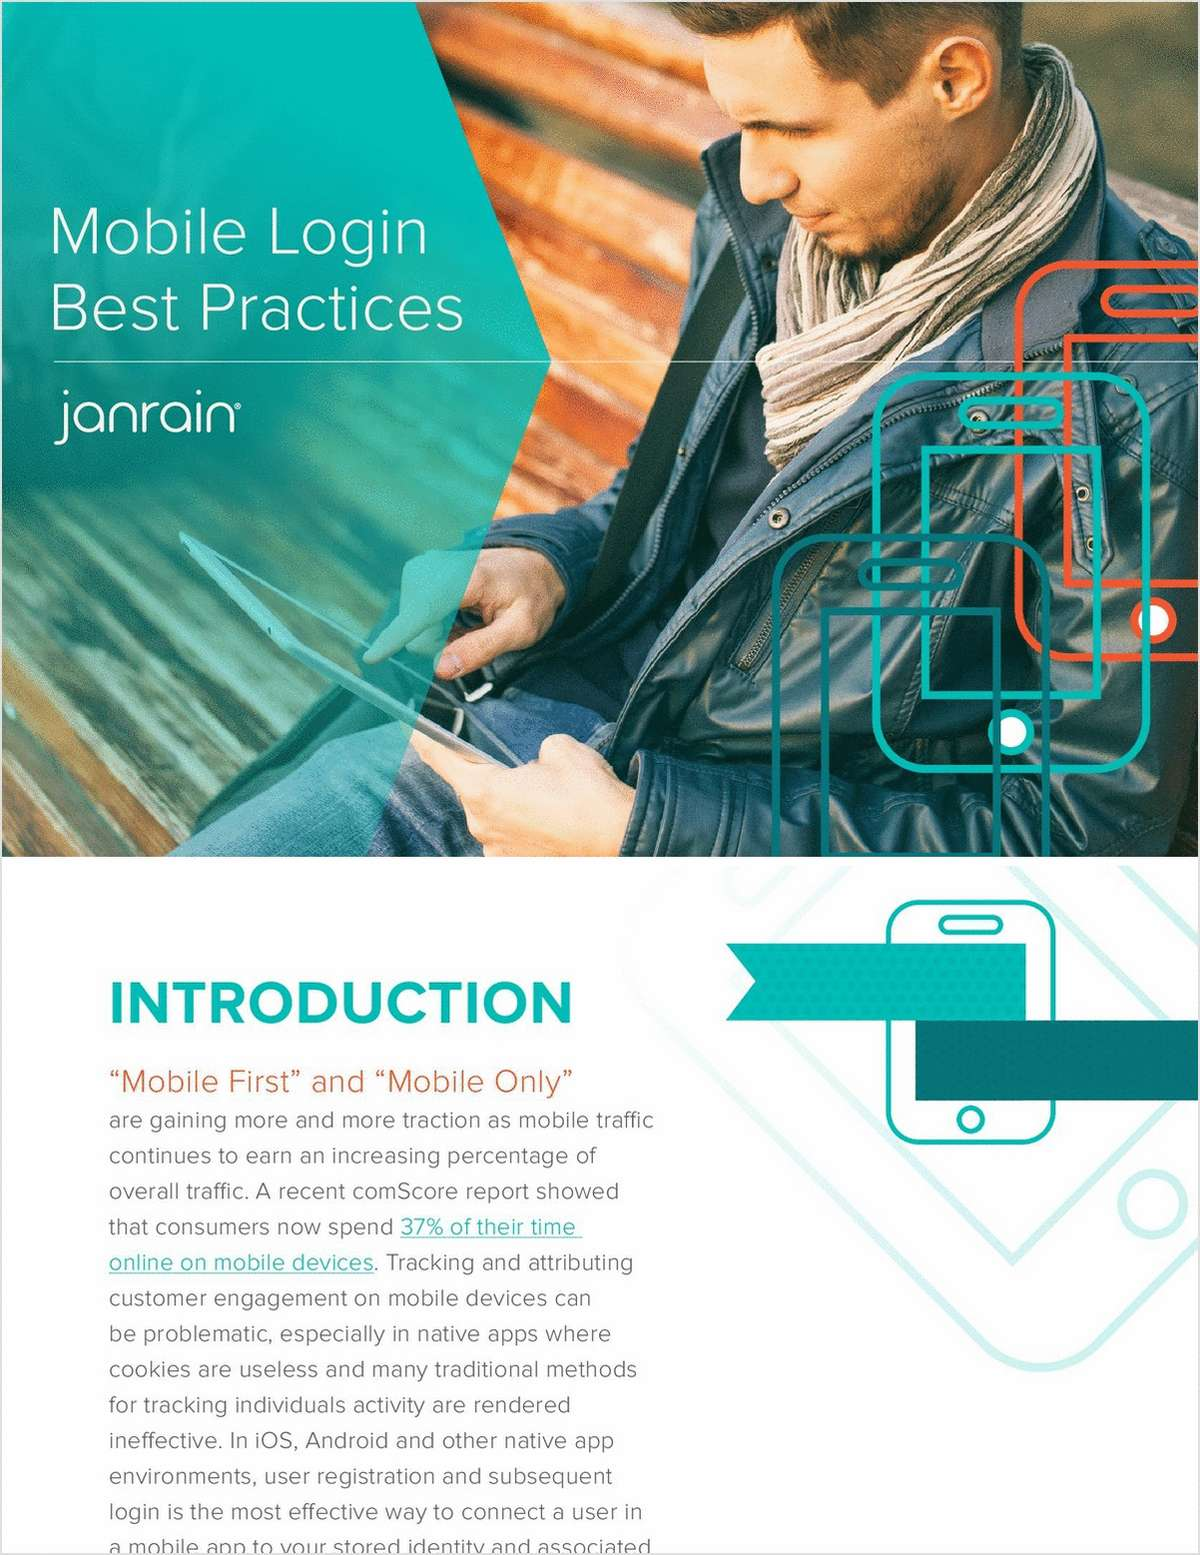 Mobile Login Best Practices